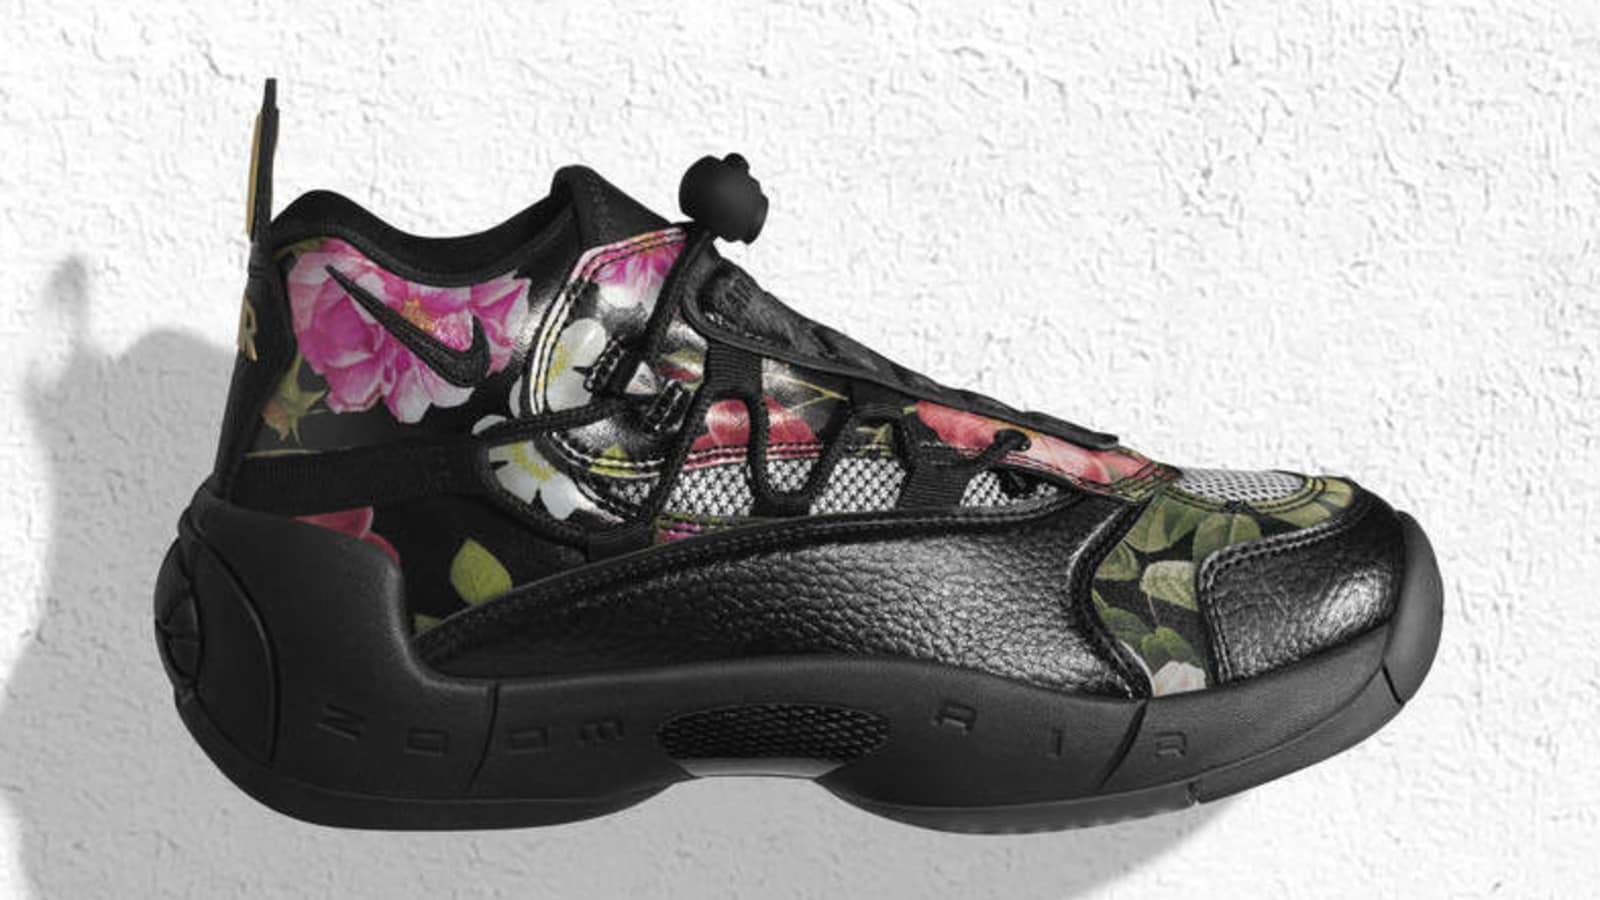 Nike Air Swoopes 2 Floral Pack